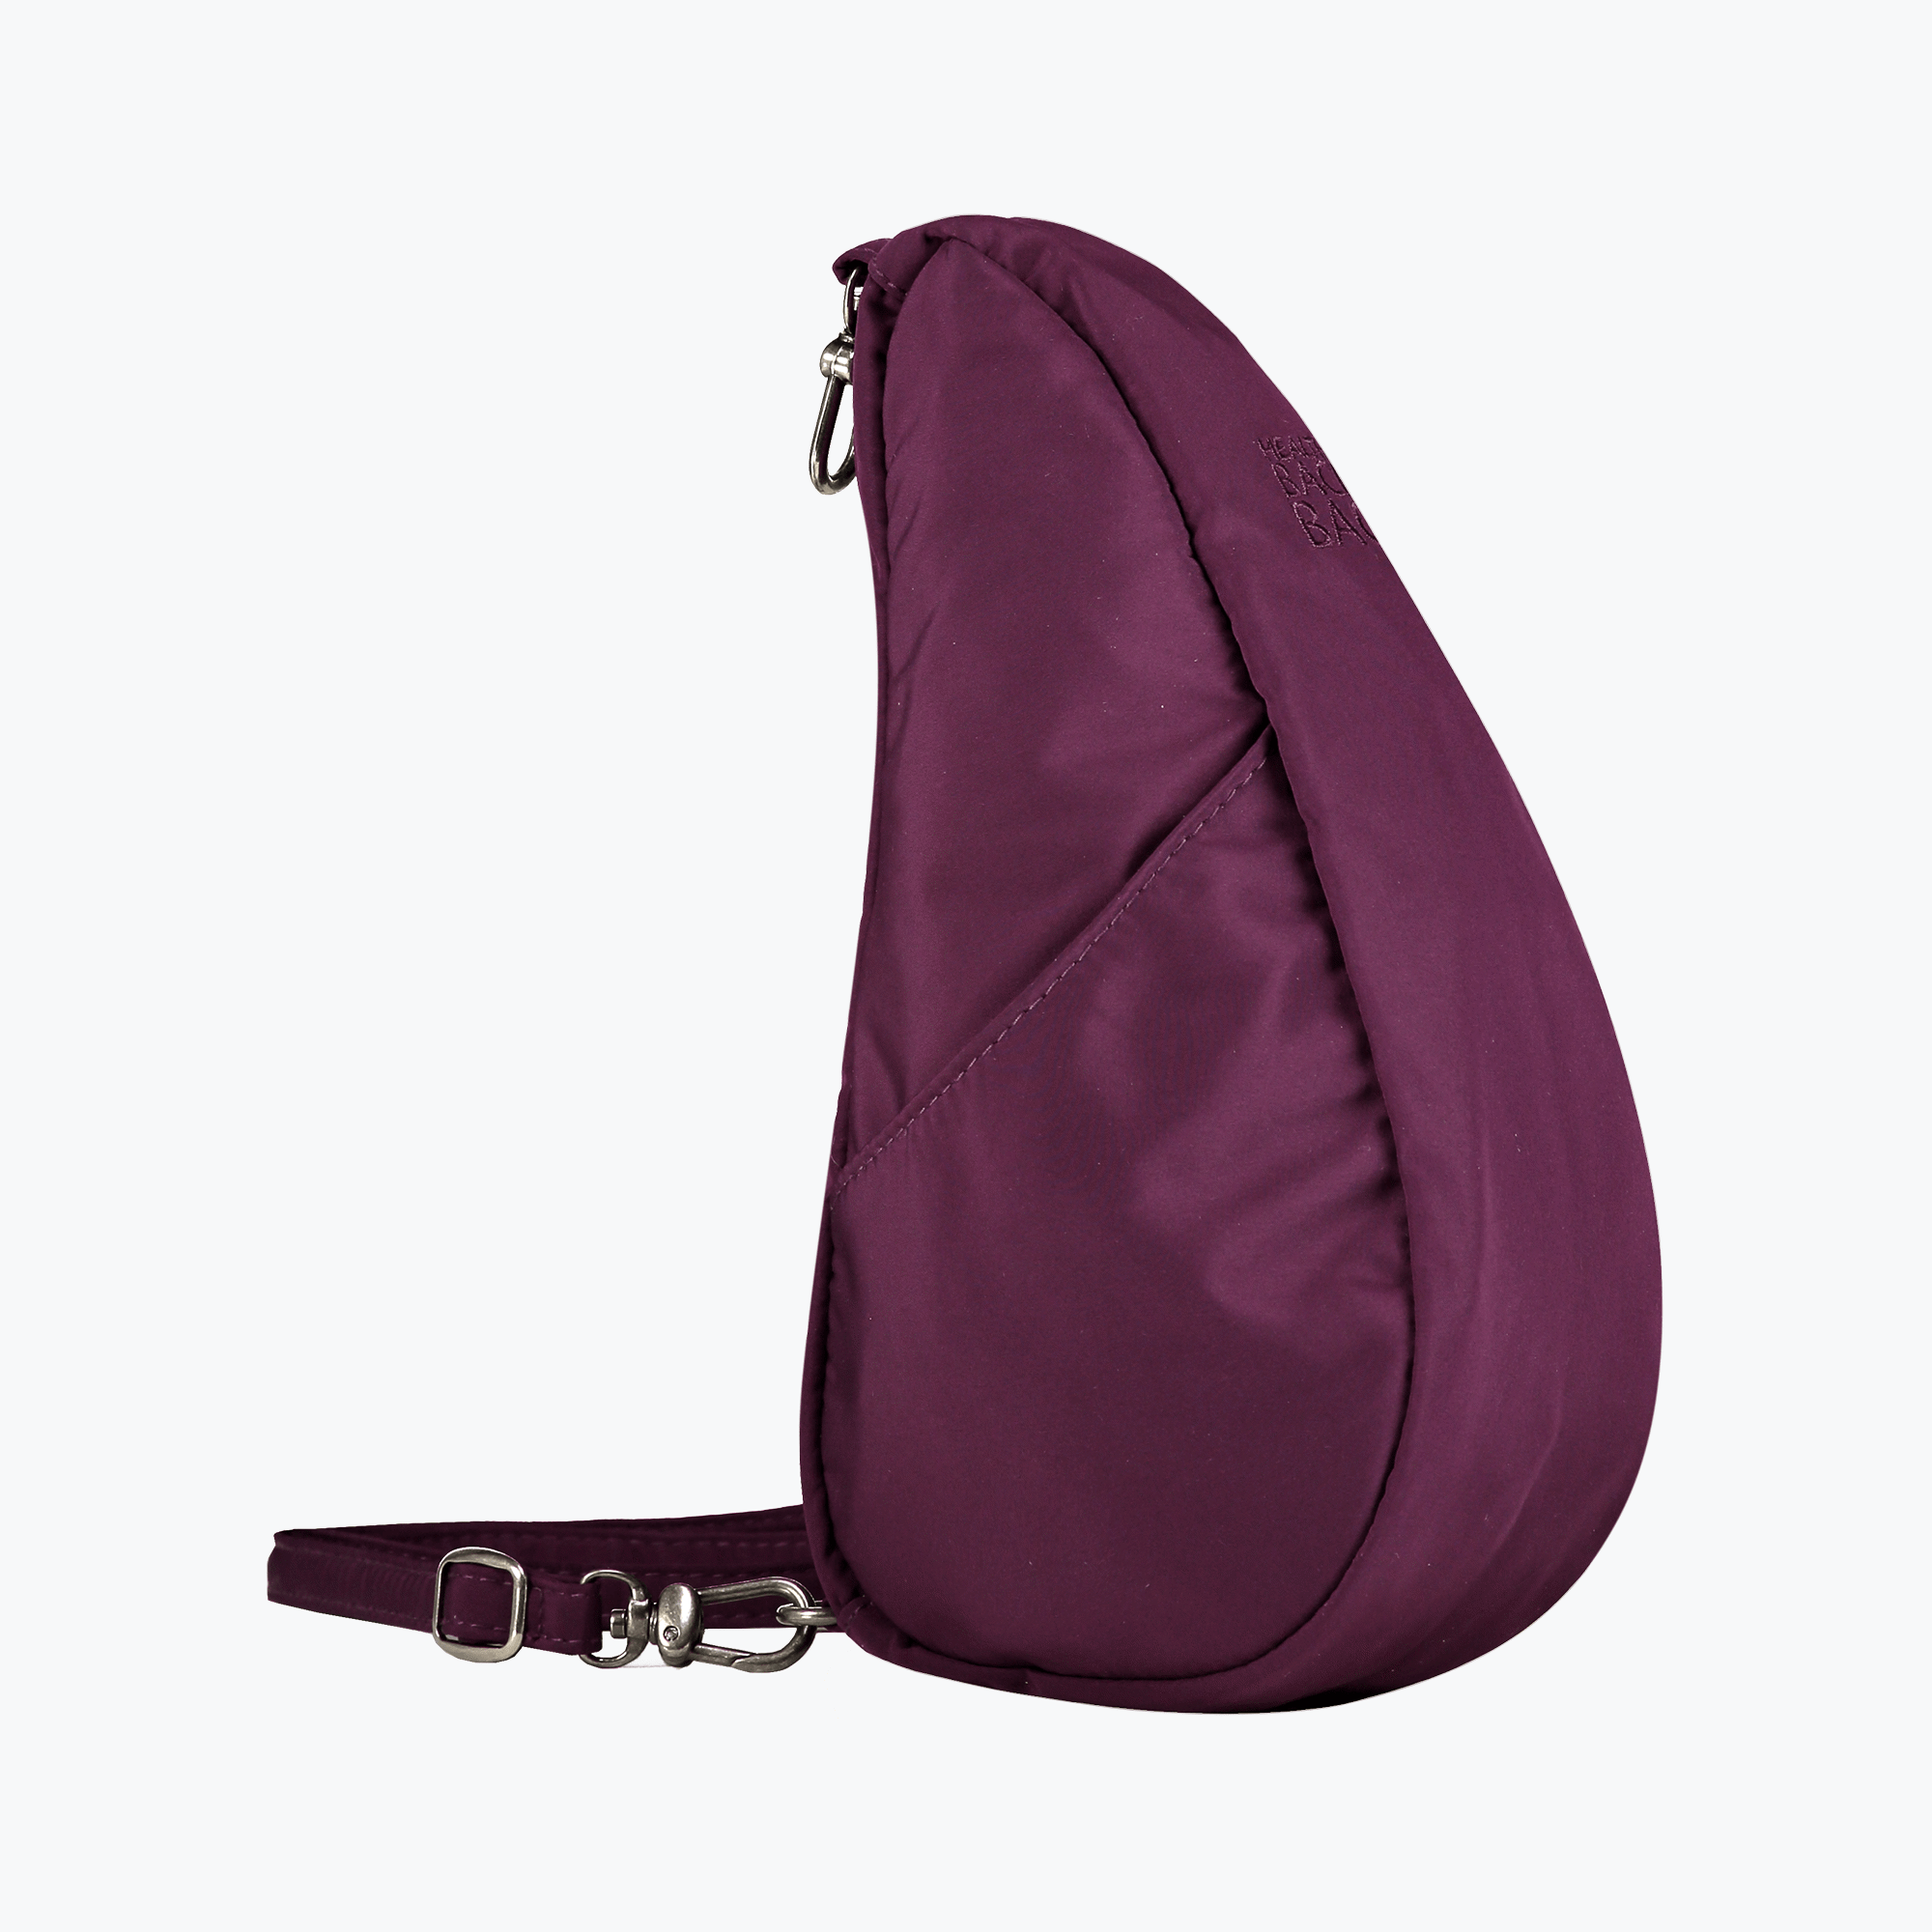 TÚI HBB MICROFIBER BAG (7100LG-RP) ROYAL PURPLE